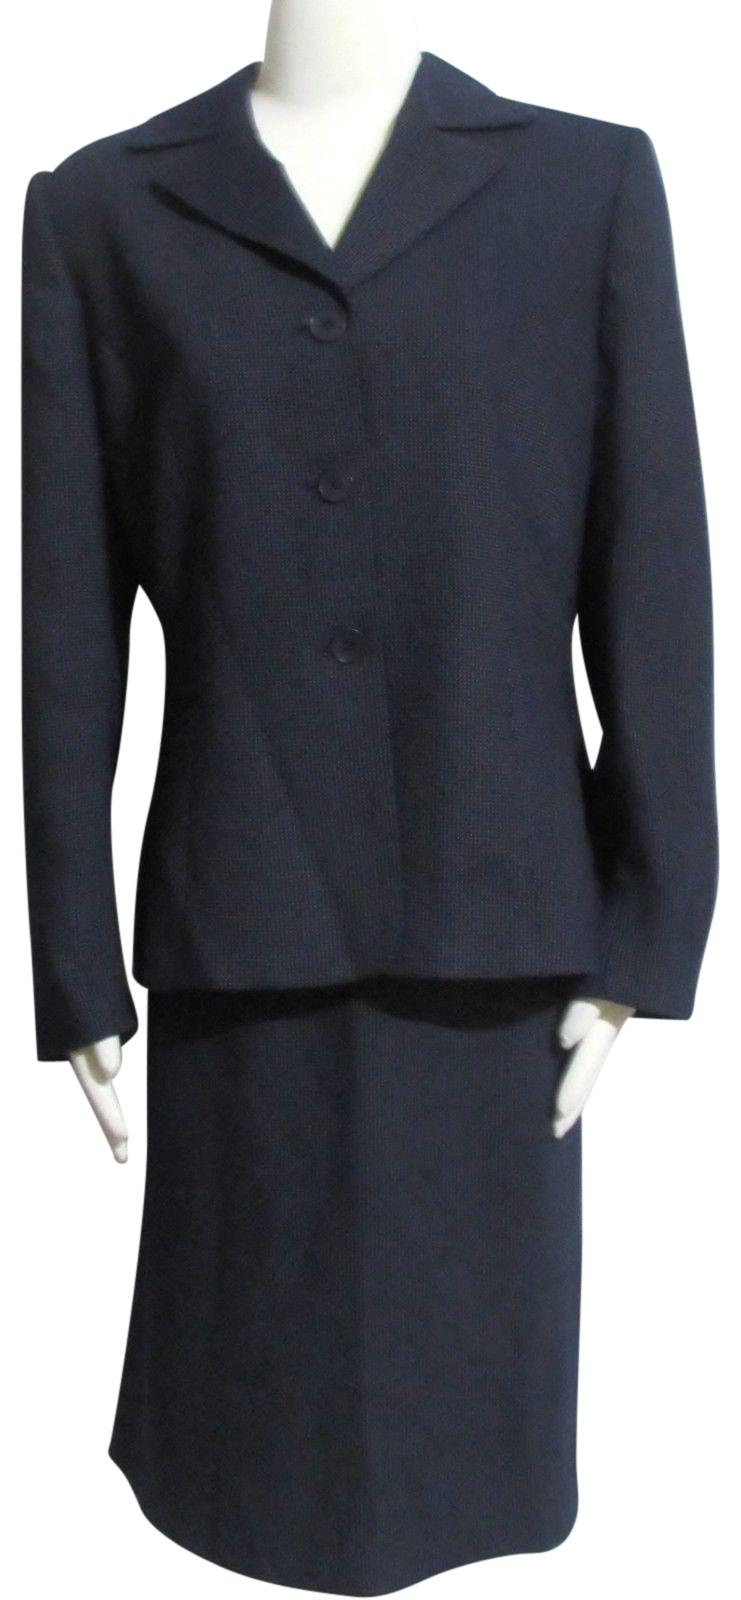 how to wear a navy skirt suit